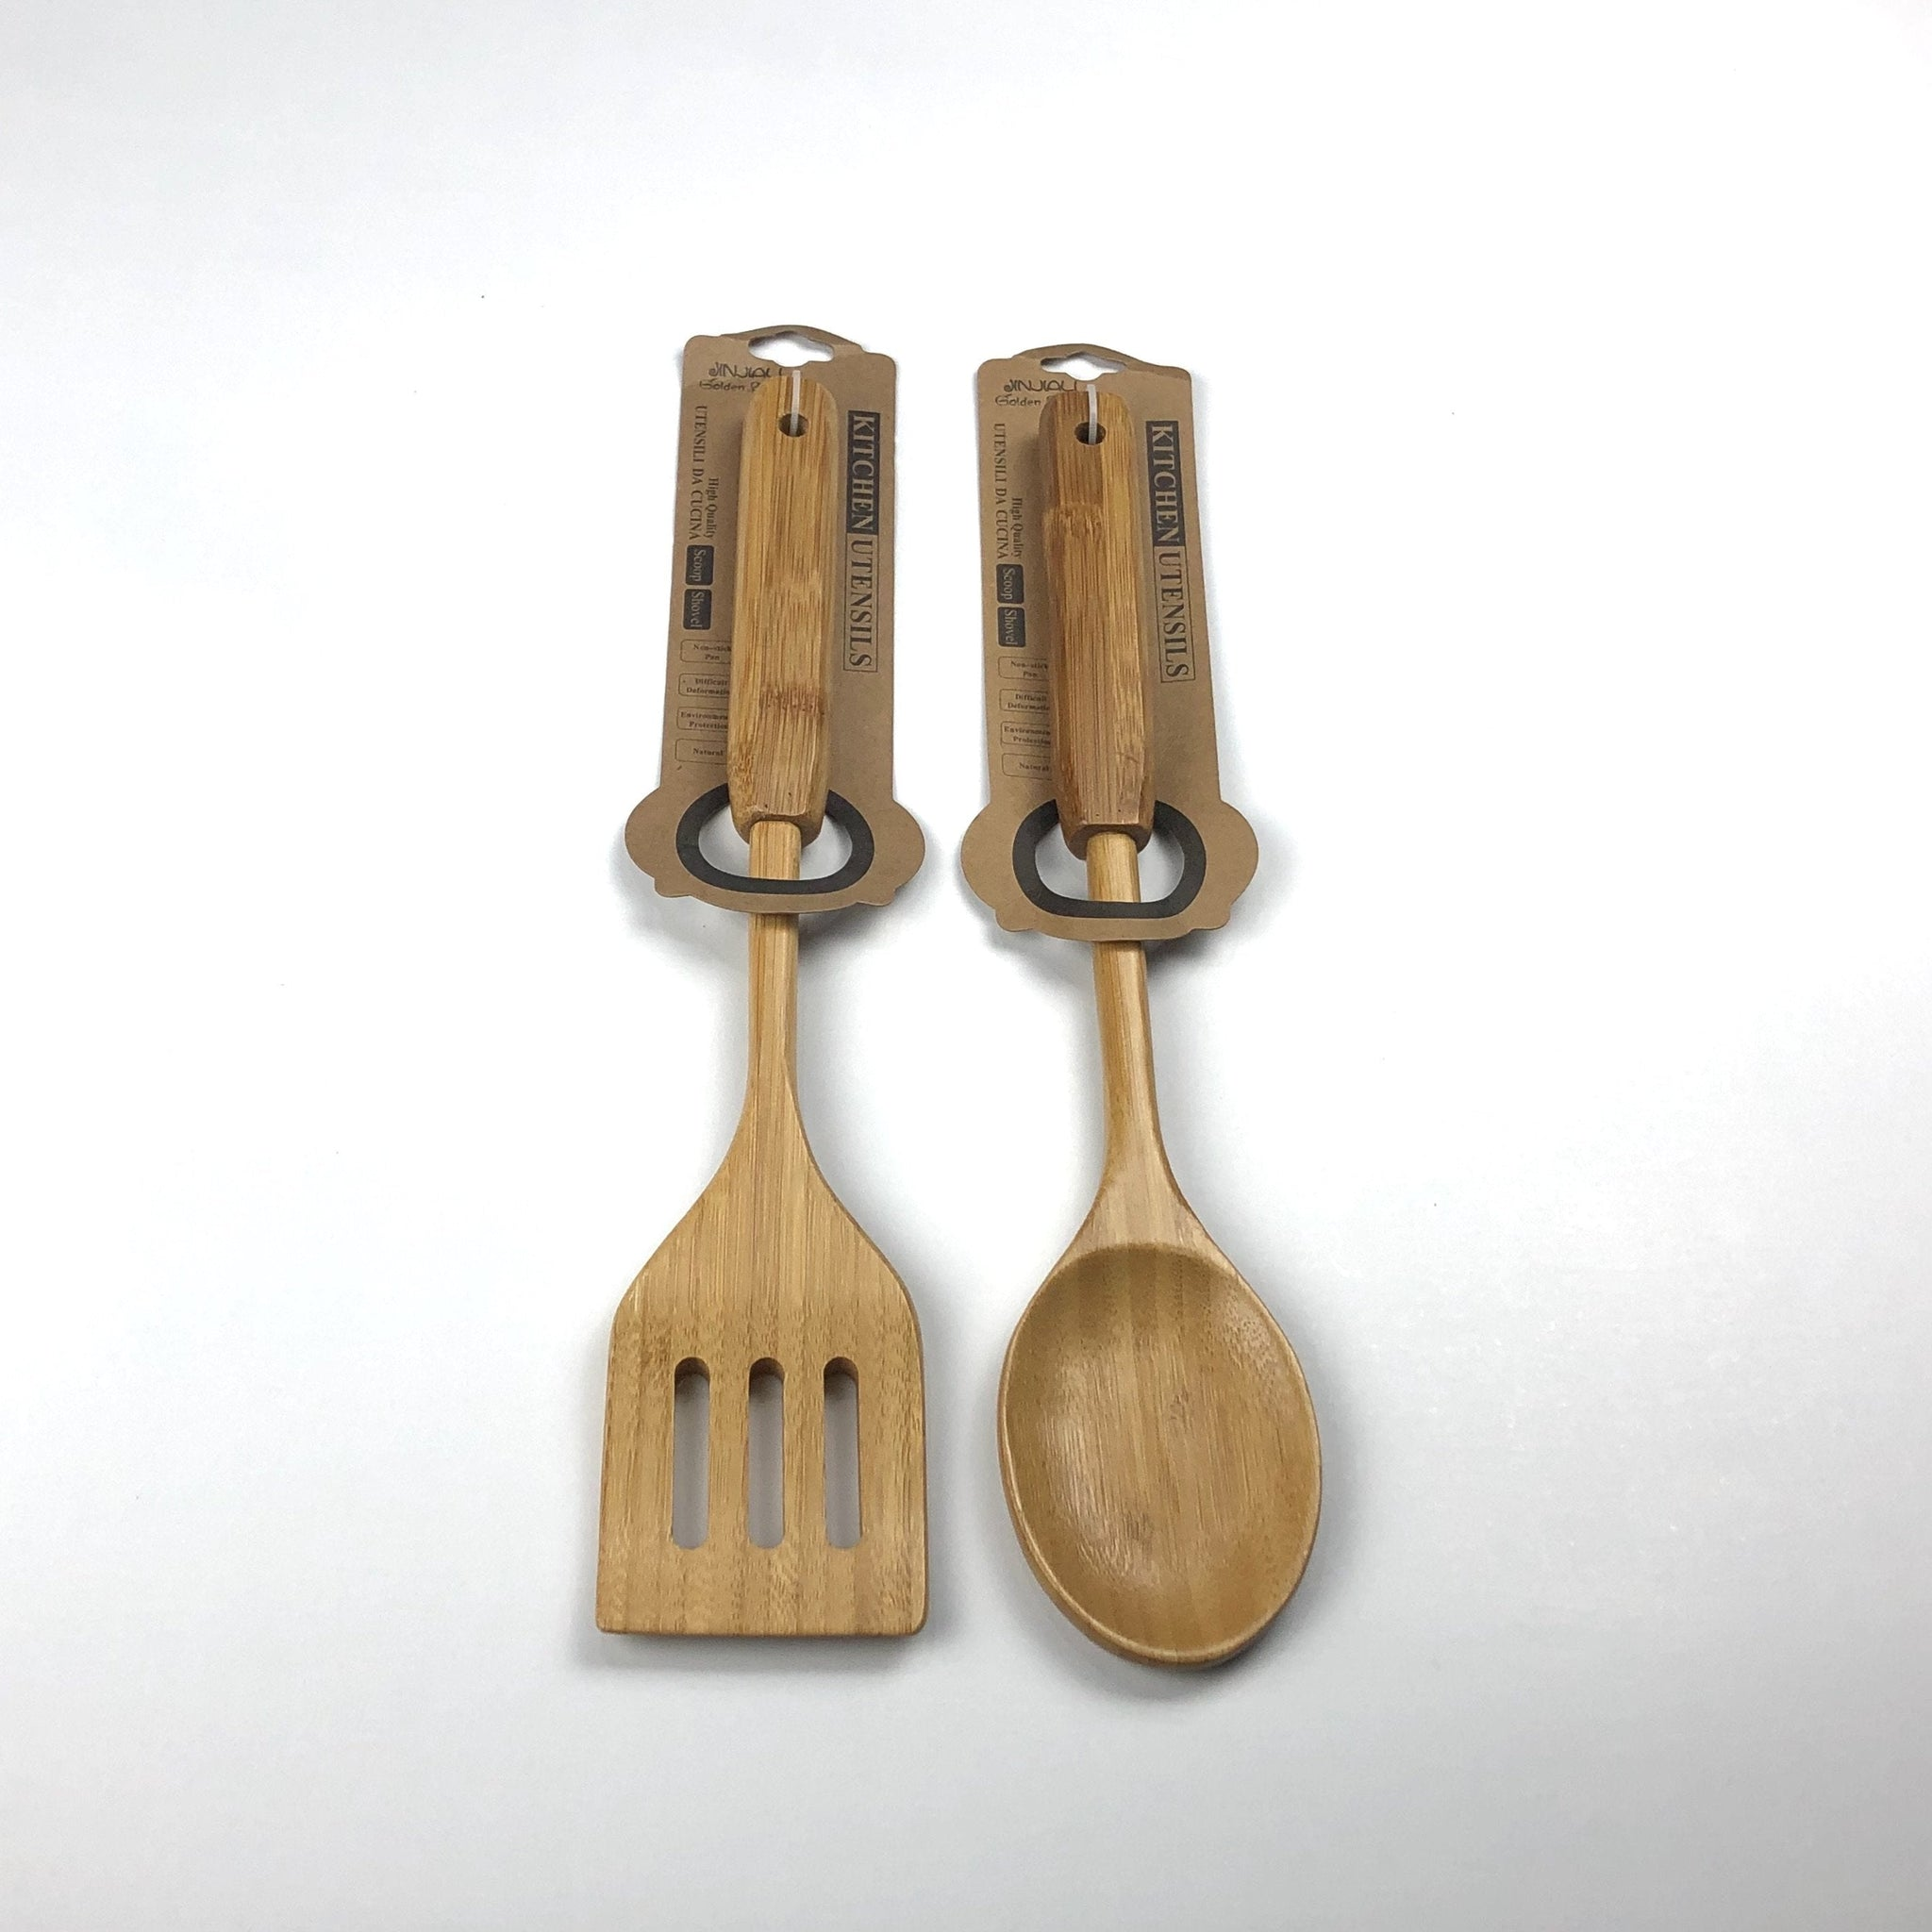 Wooden Cooking Spoons and Spatulas - Jinjiali Golden Bamboo